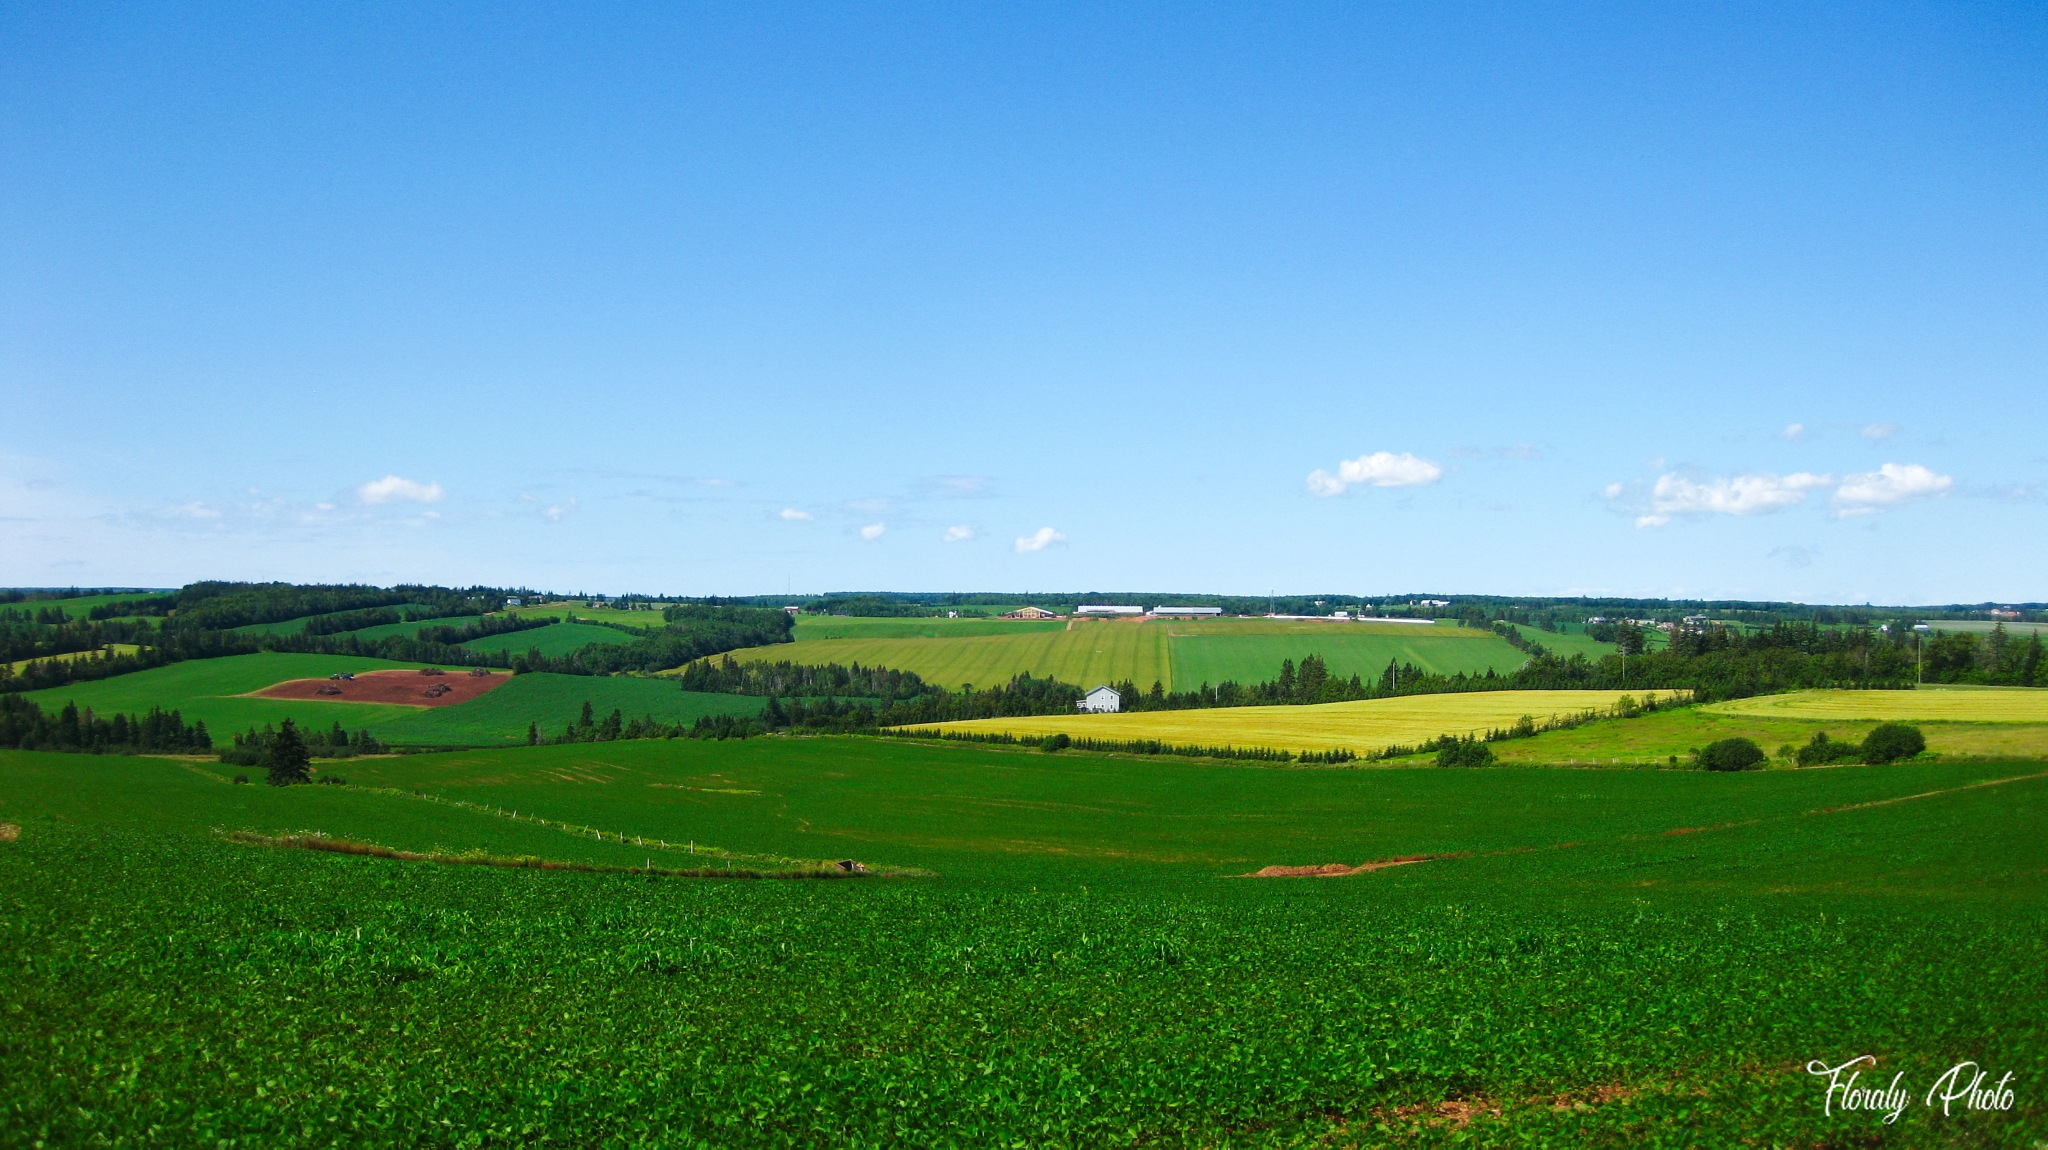 PEI lands by FloralyPhoto